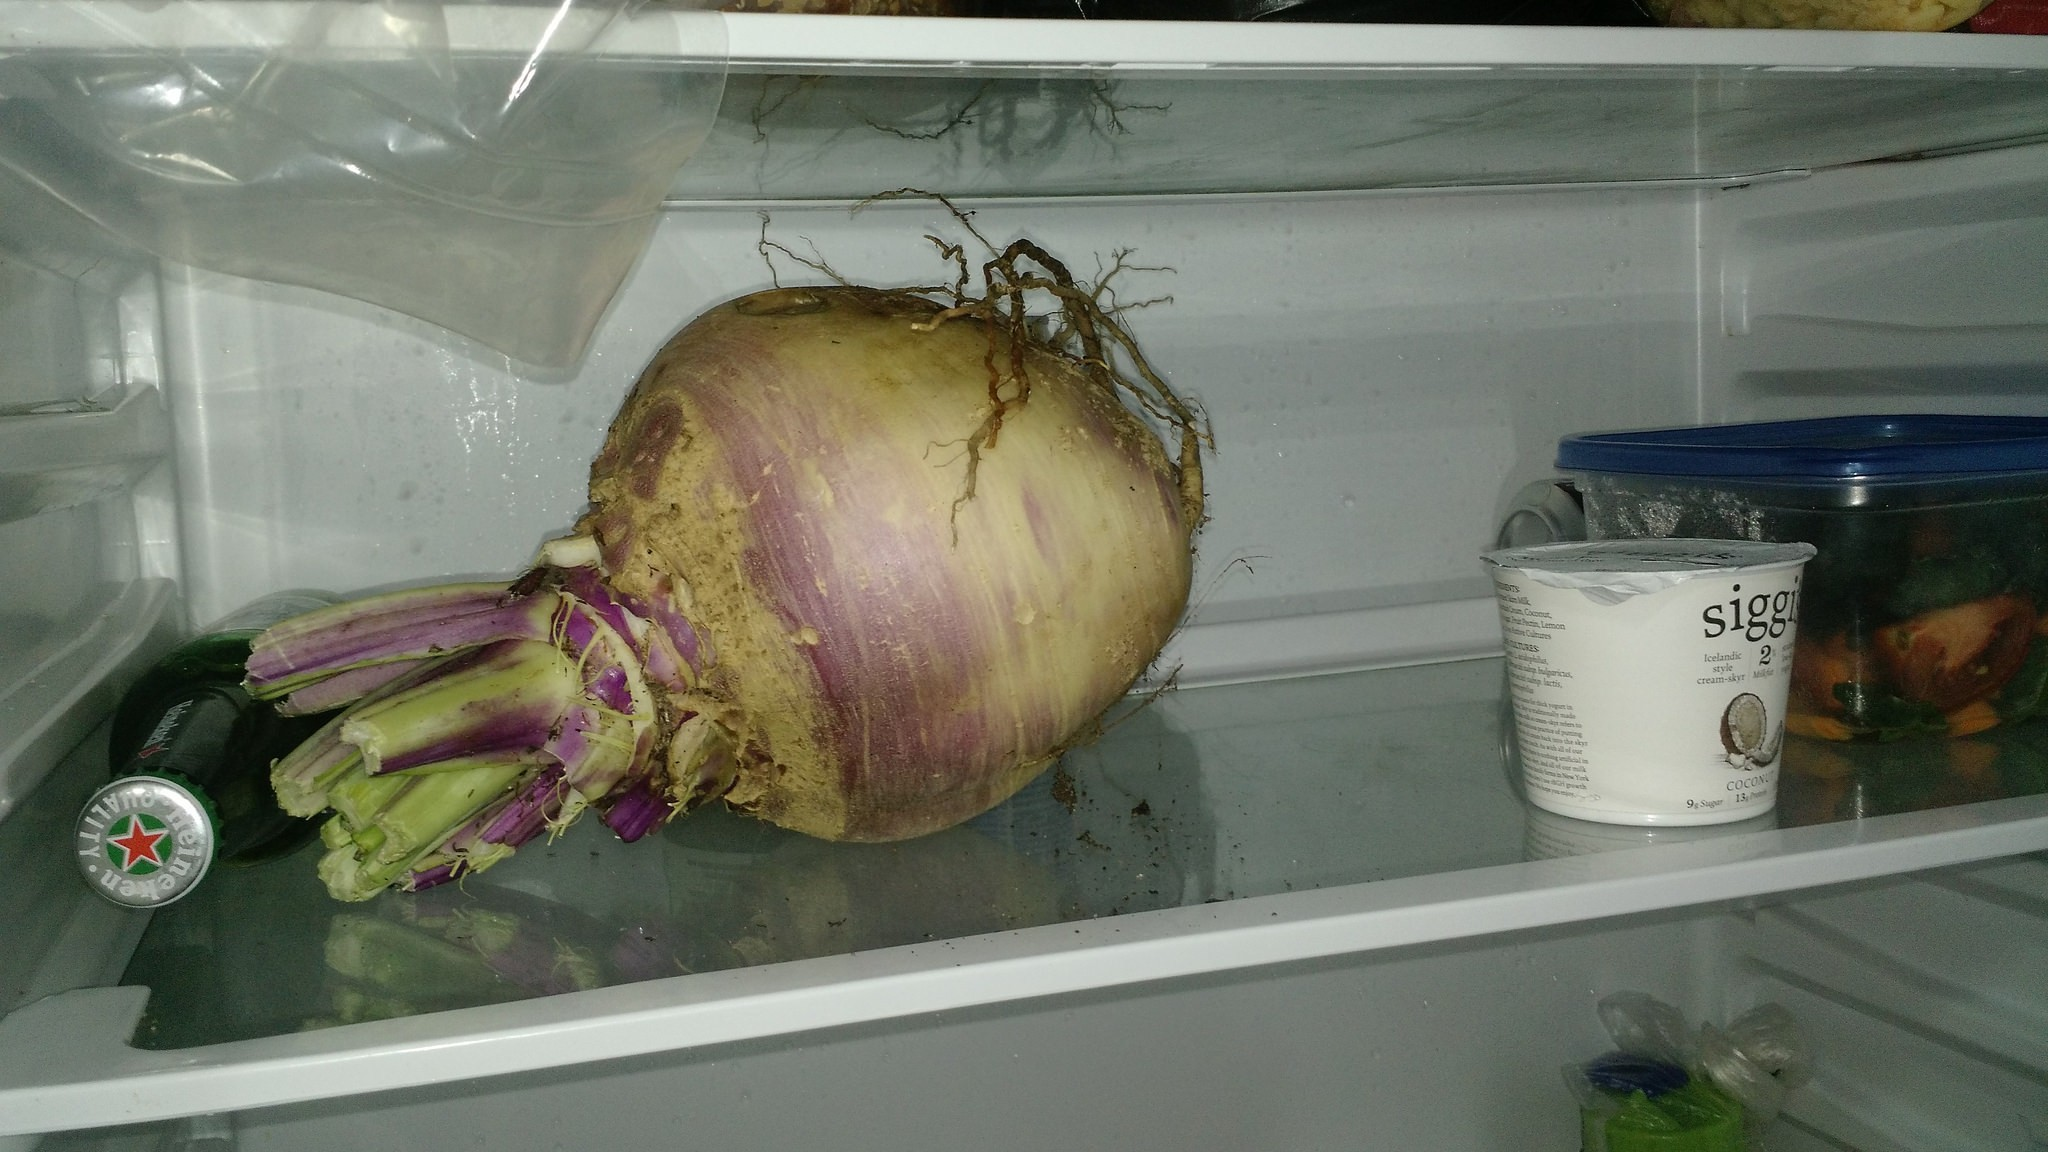 What Is This Enormous Vegetable and Why Is It in Our Refrigerator? (Update!)